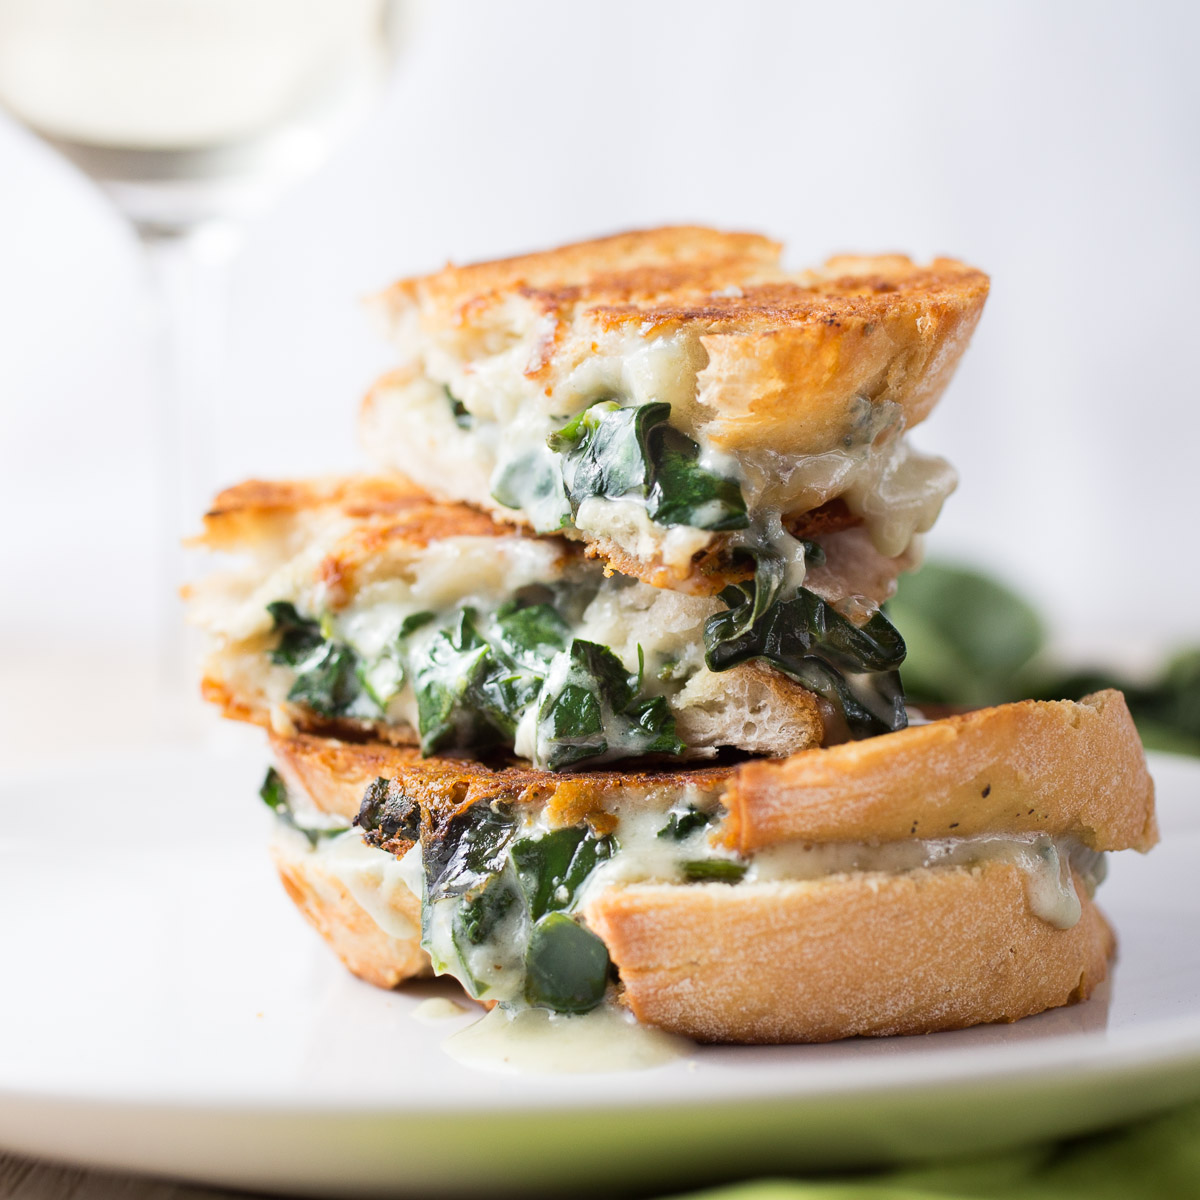 Gorgonzola and spinach grilled cheese sandwich